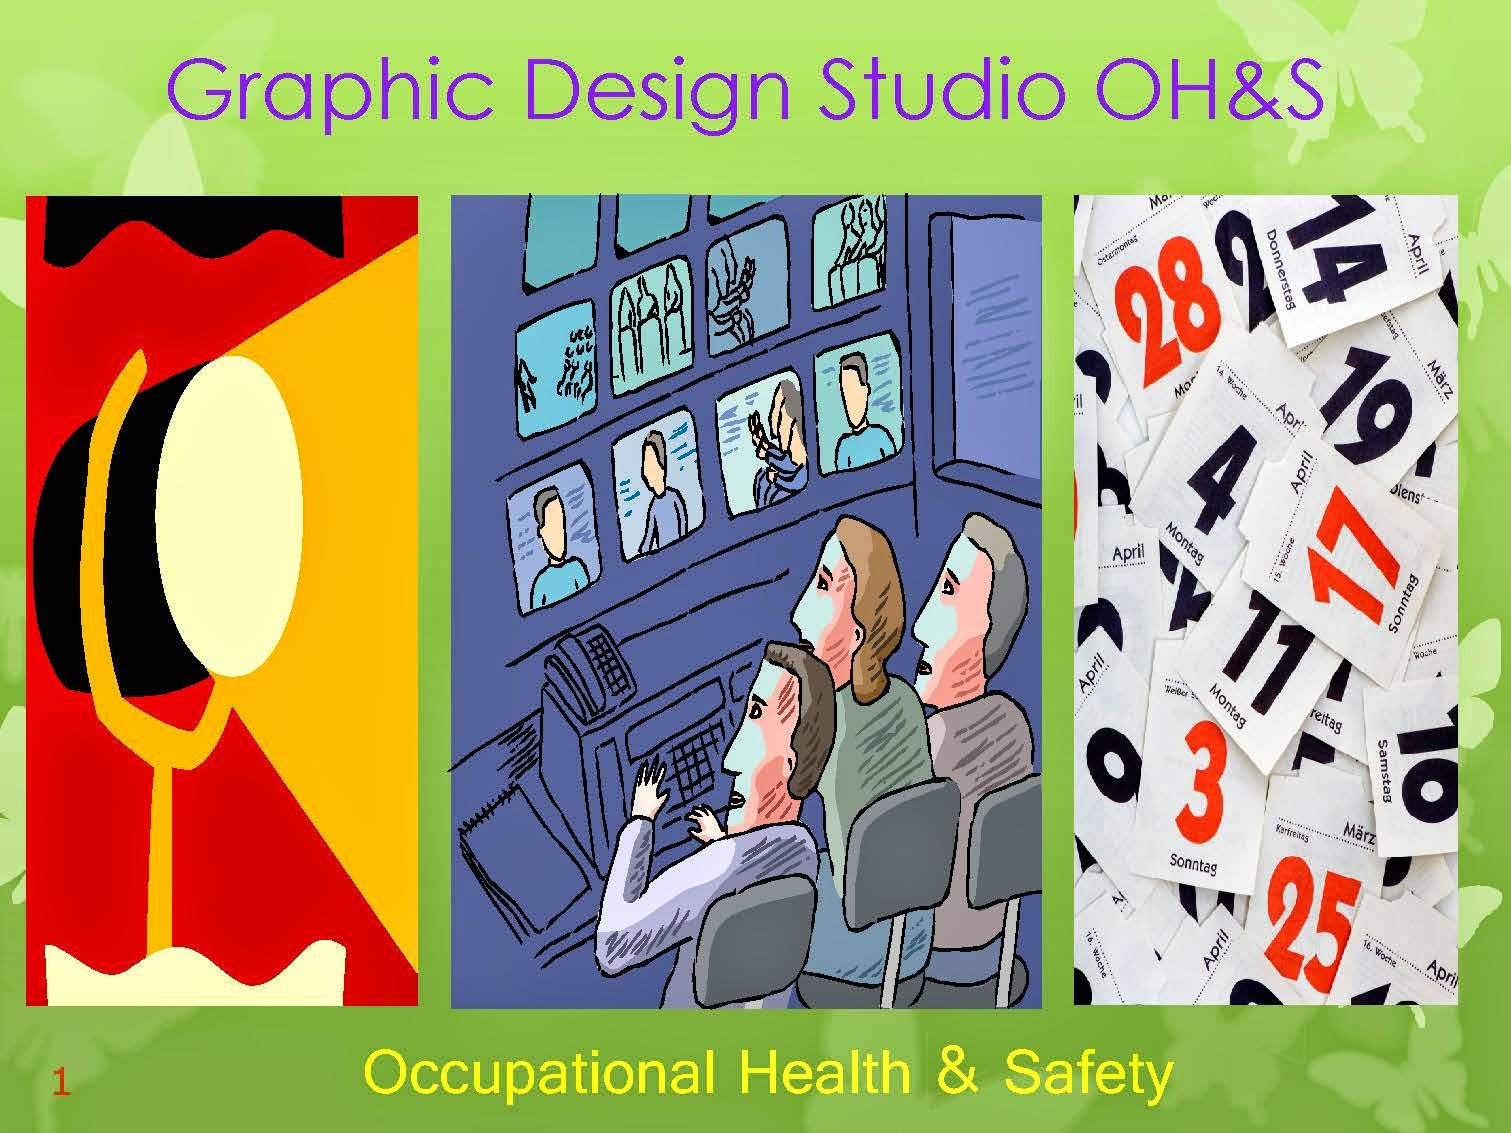 DESIGN STUDIO OCCUPATIONAL HEALTH AND SAFETY